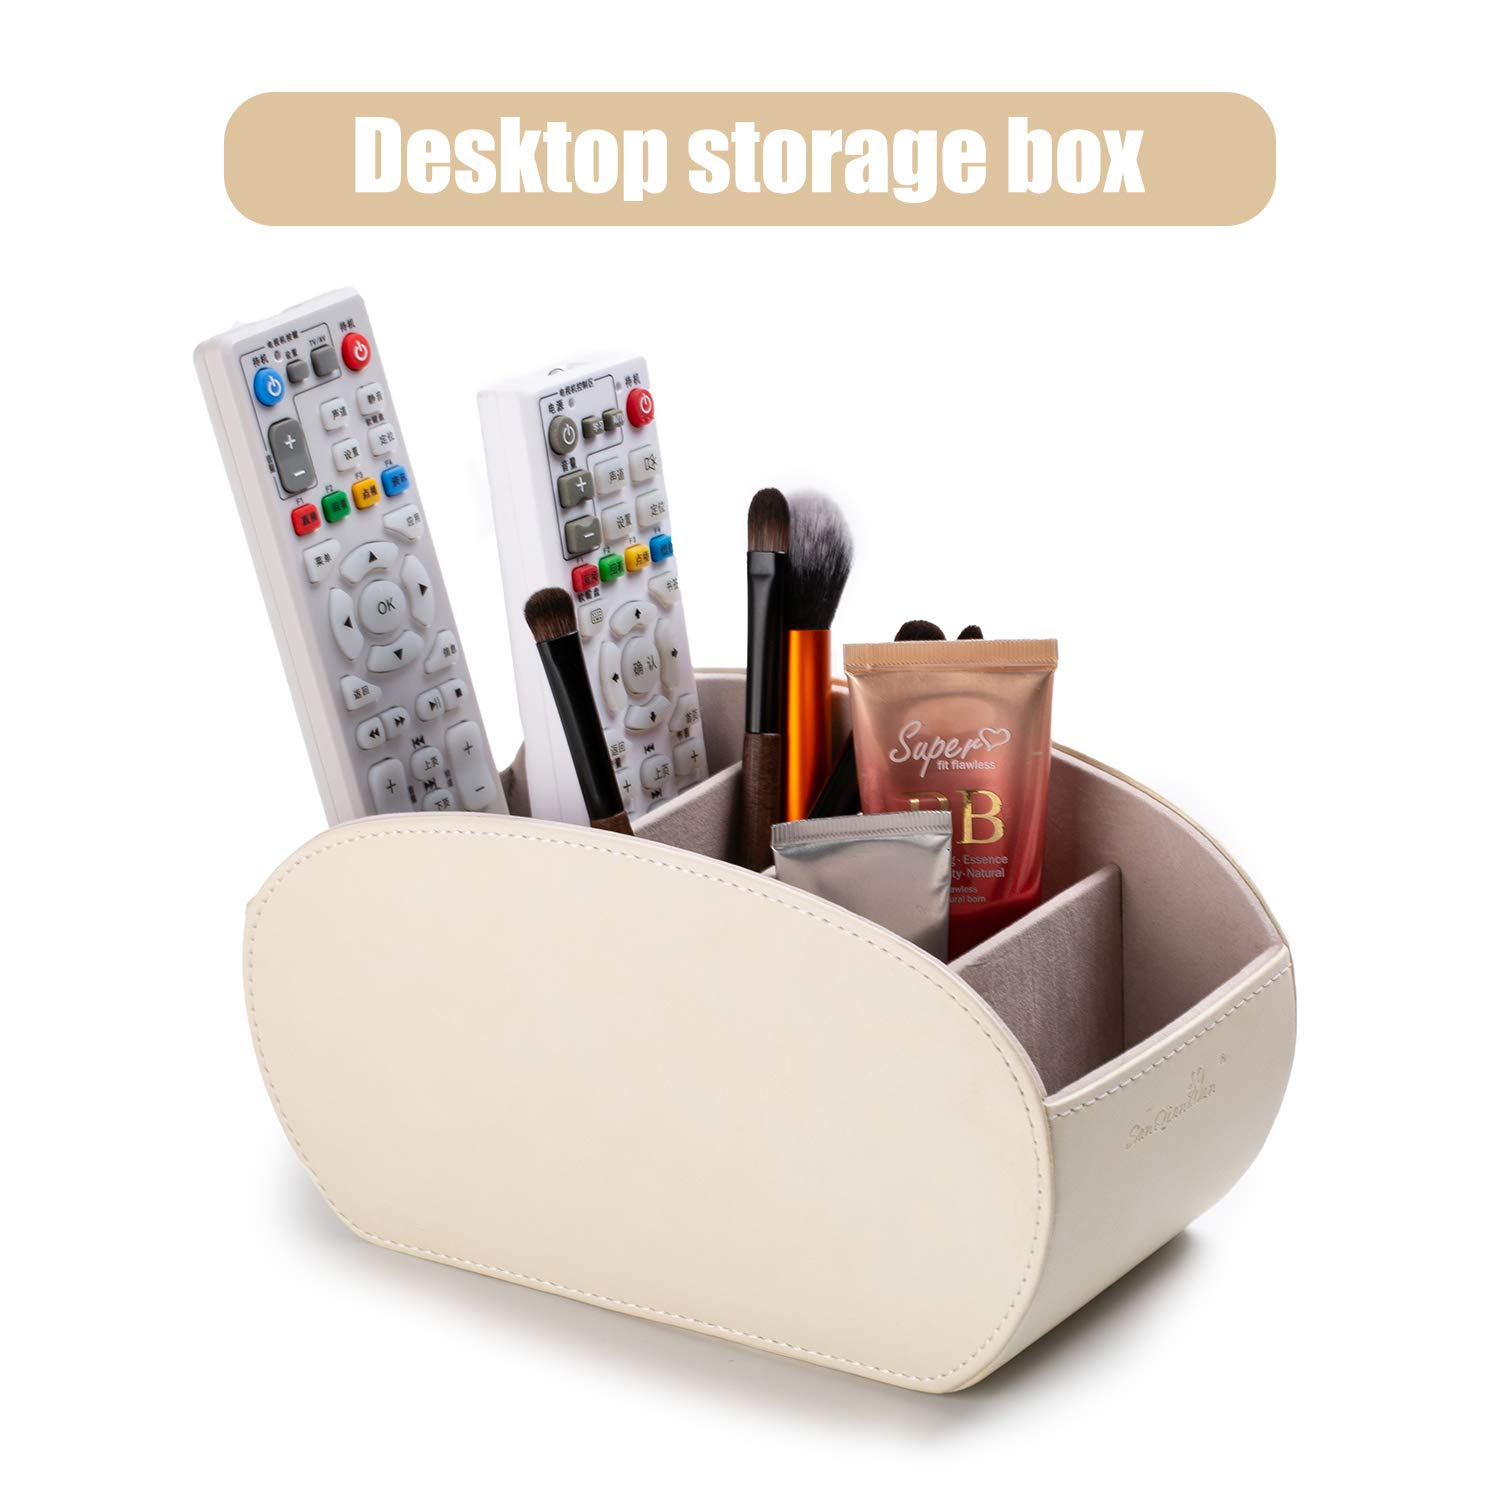 Tv Remote Control Holders Organizer Box with 5 Compartment PU Leather Multi-Functional Office Organization and Storage Caddy Store Tv Remote Holders,Brush,Pencil,Glasses and Media Player (Beige1)